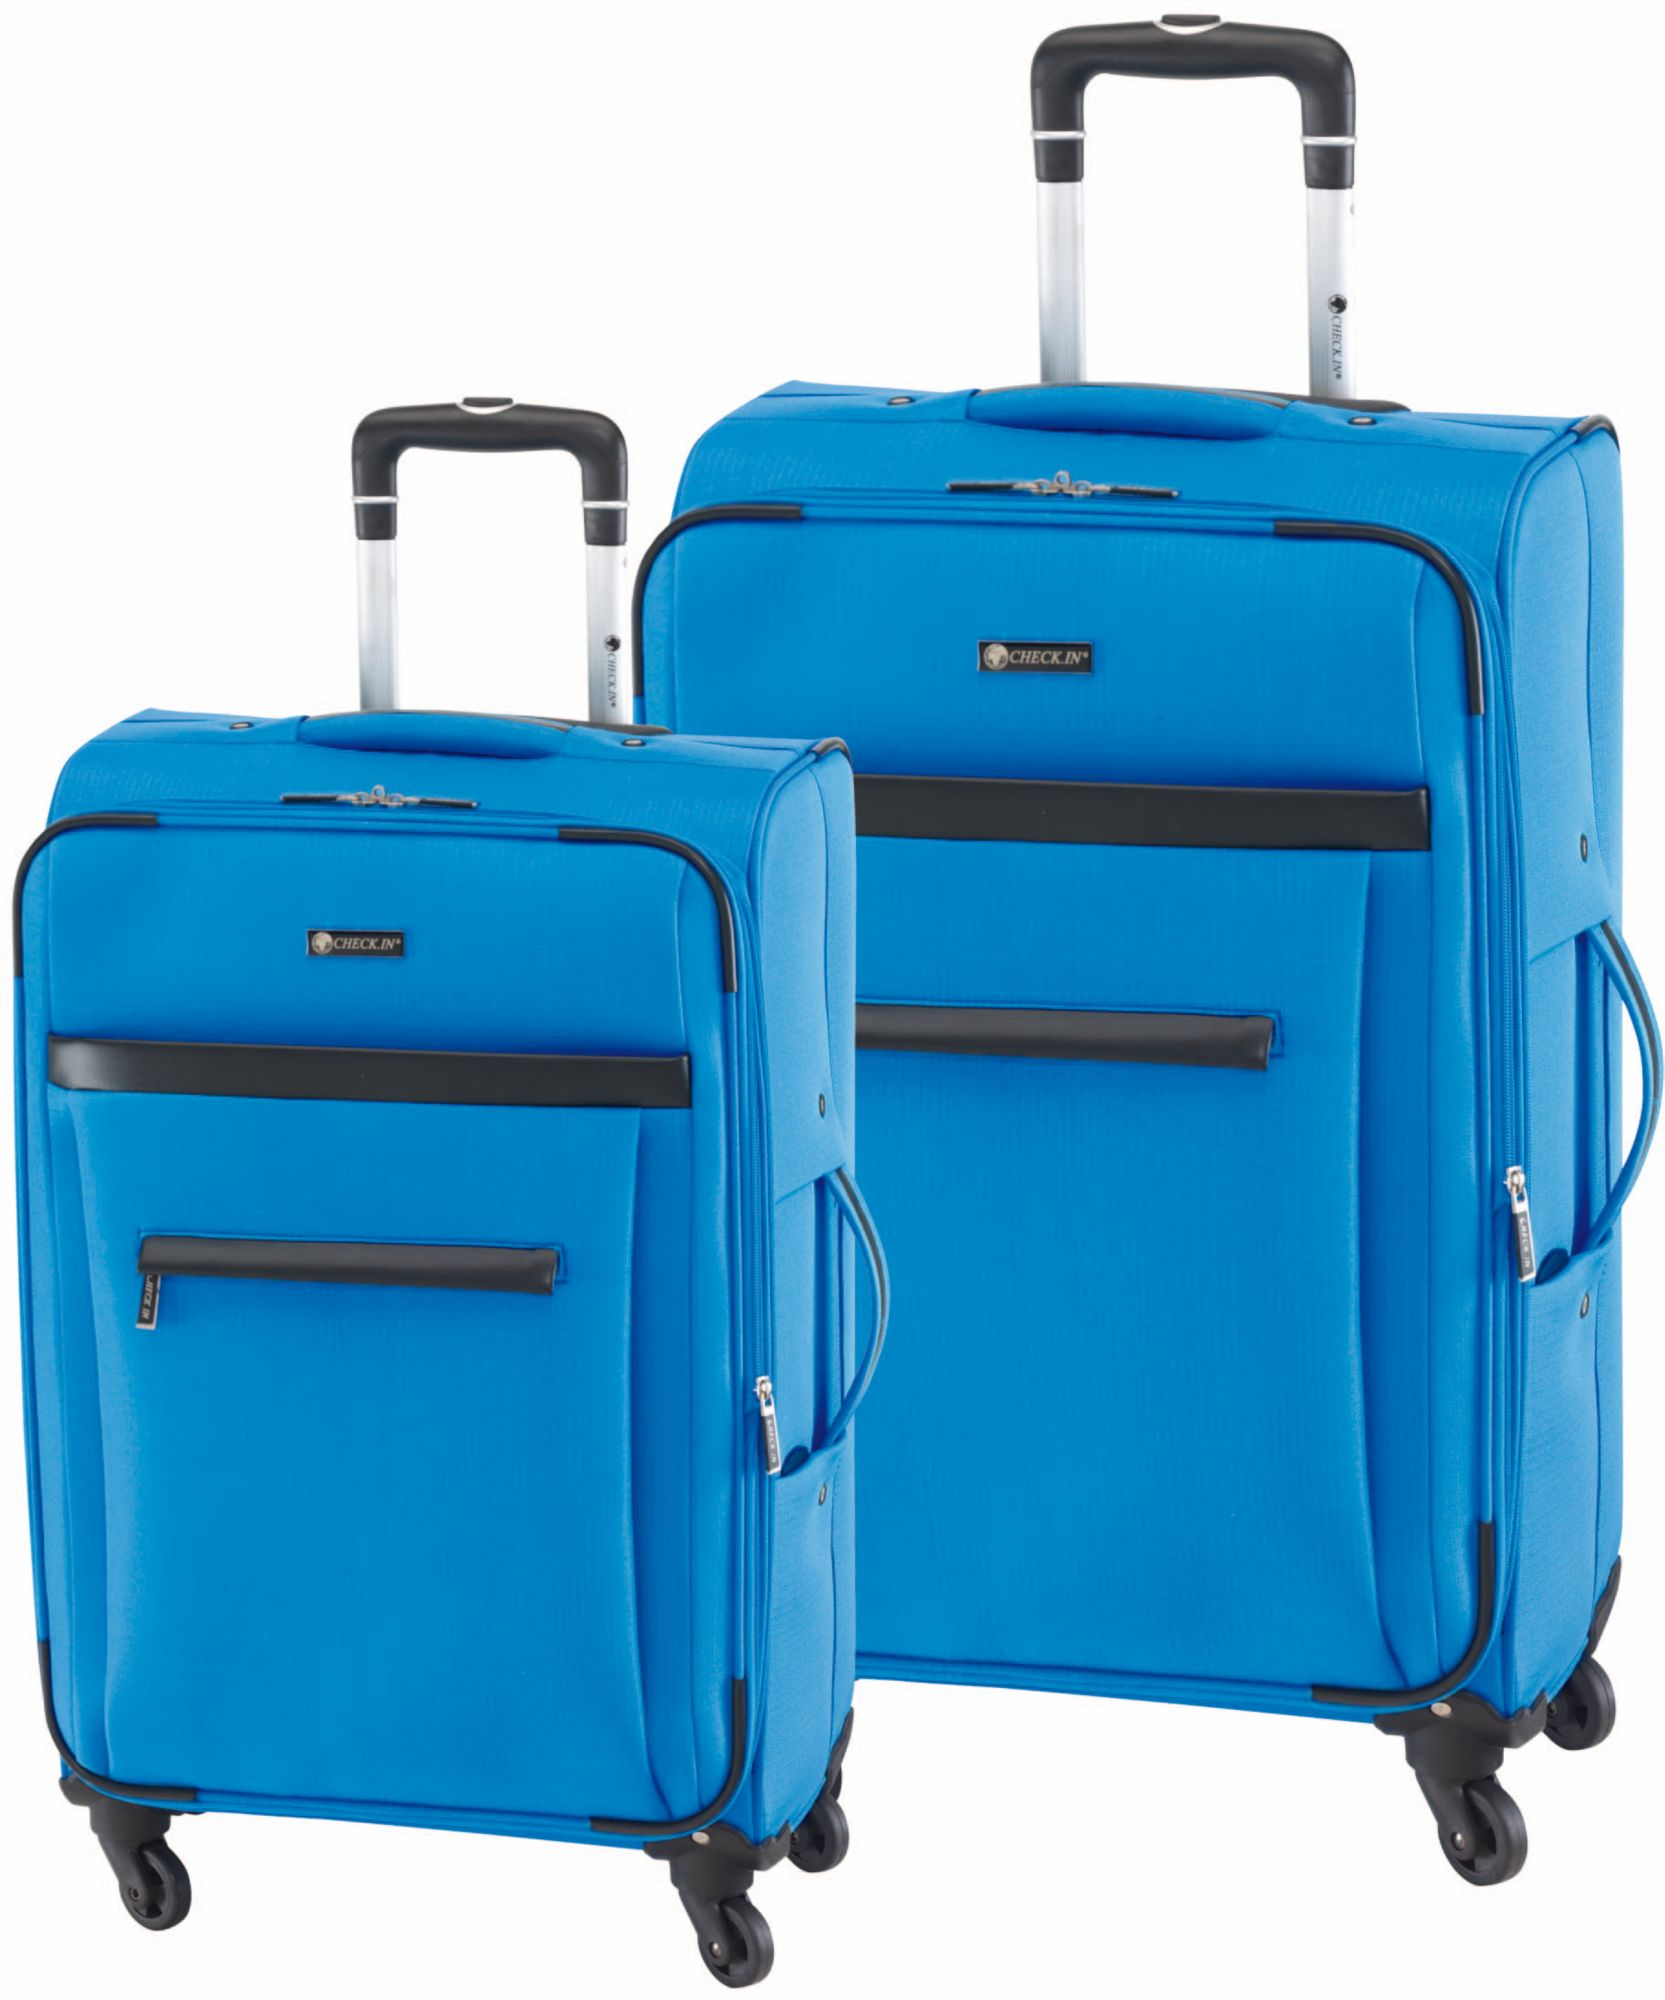 CHECK IN CHECK.IN® Trolley Set mit 4 Rollen, 2tlg., »Nizza«